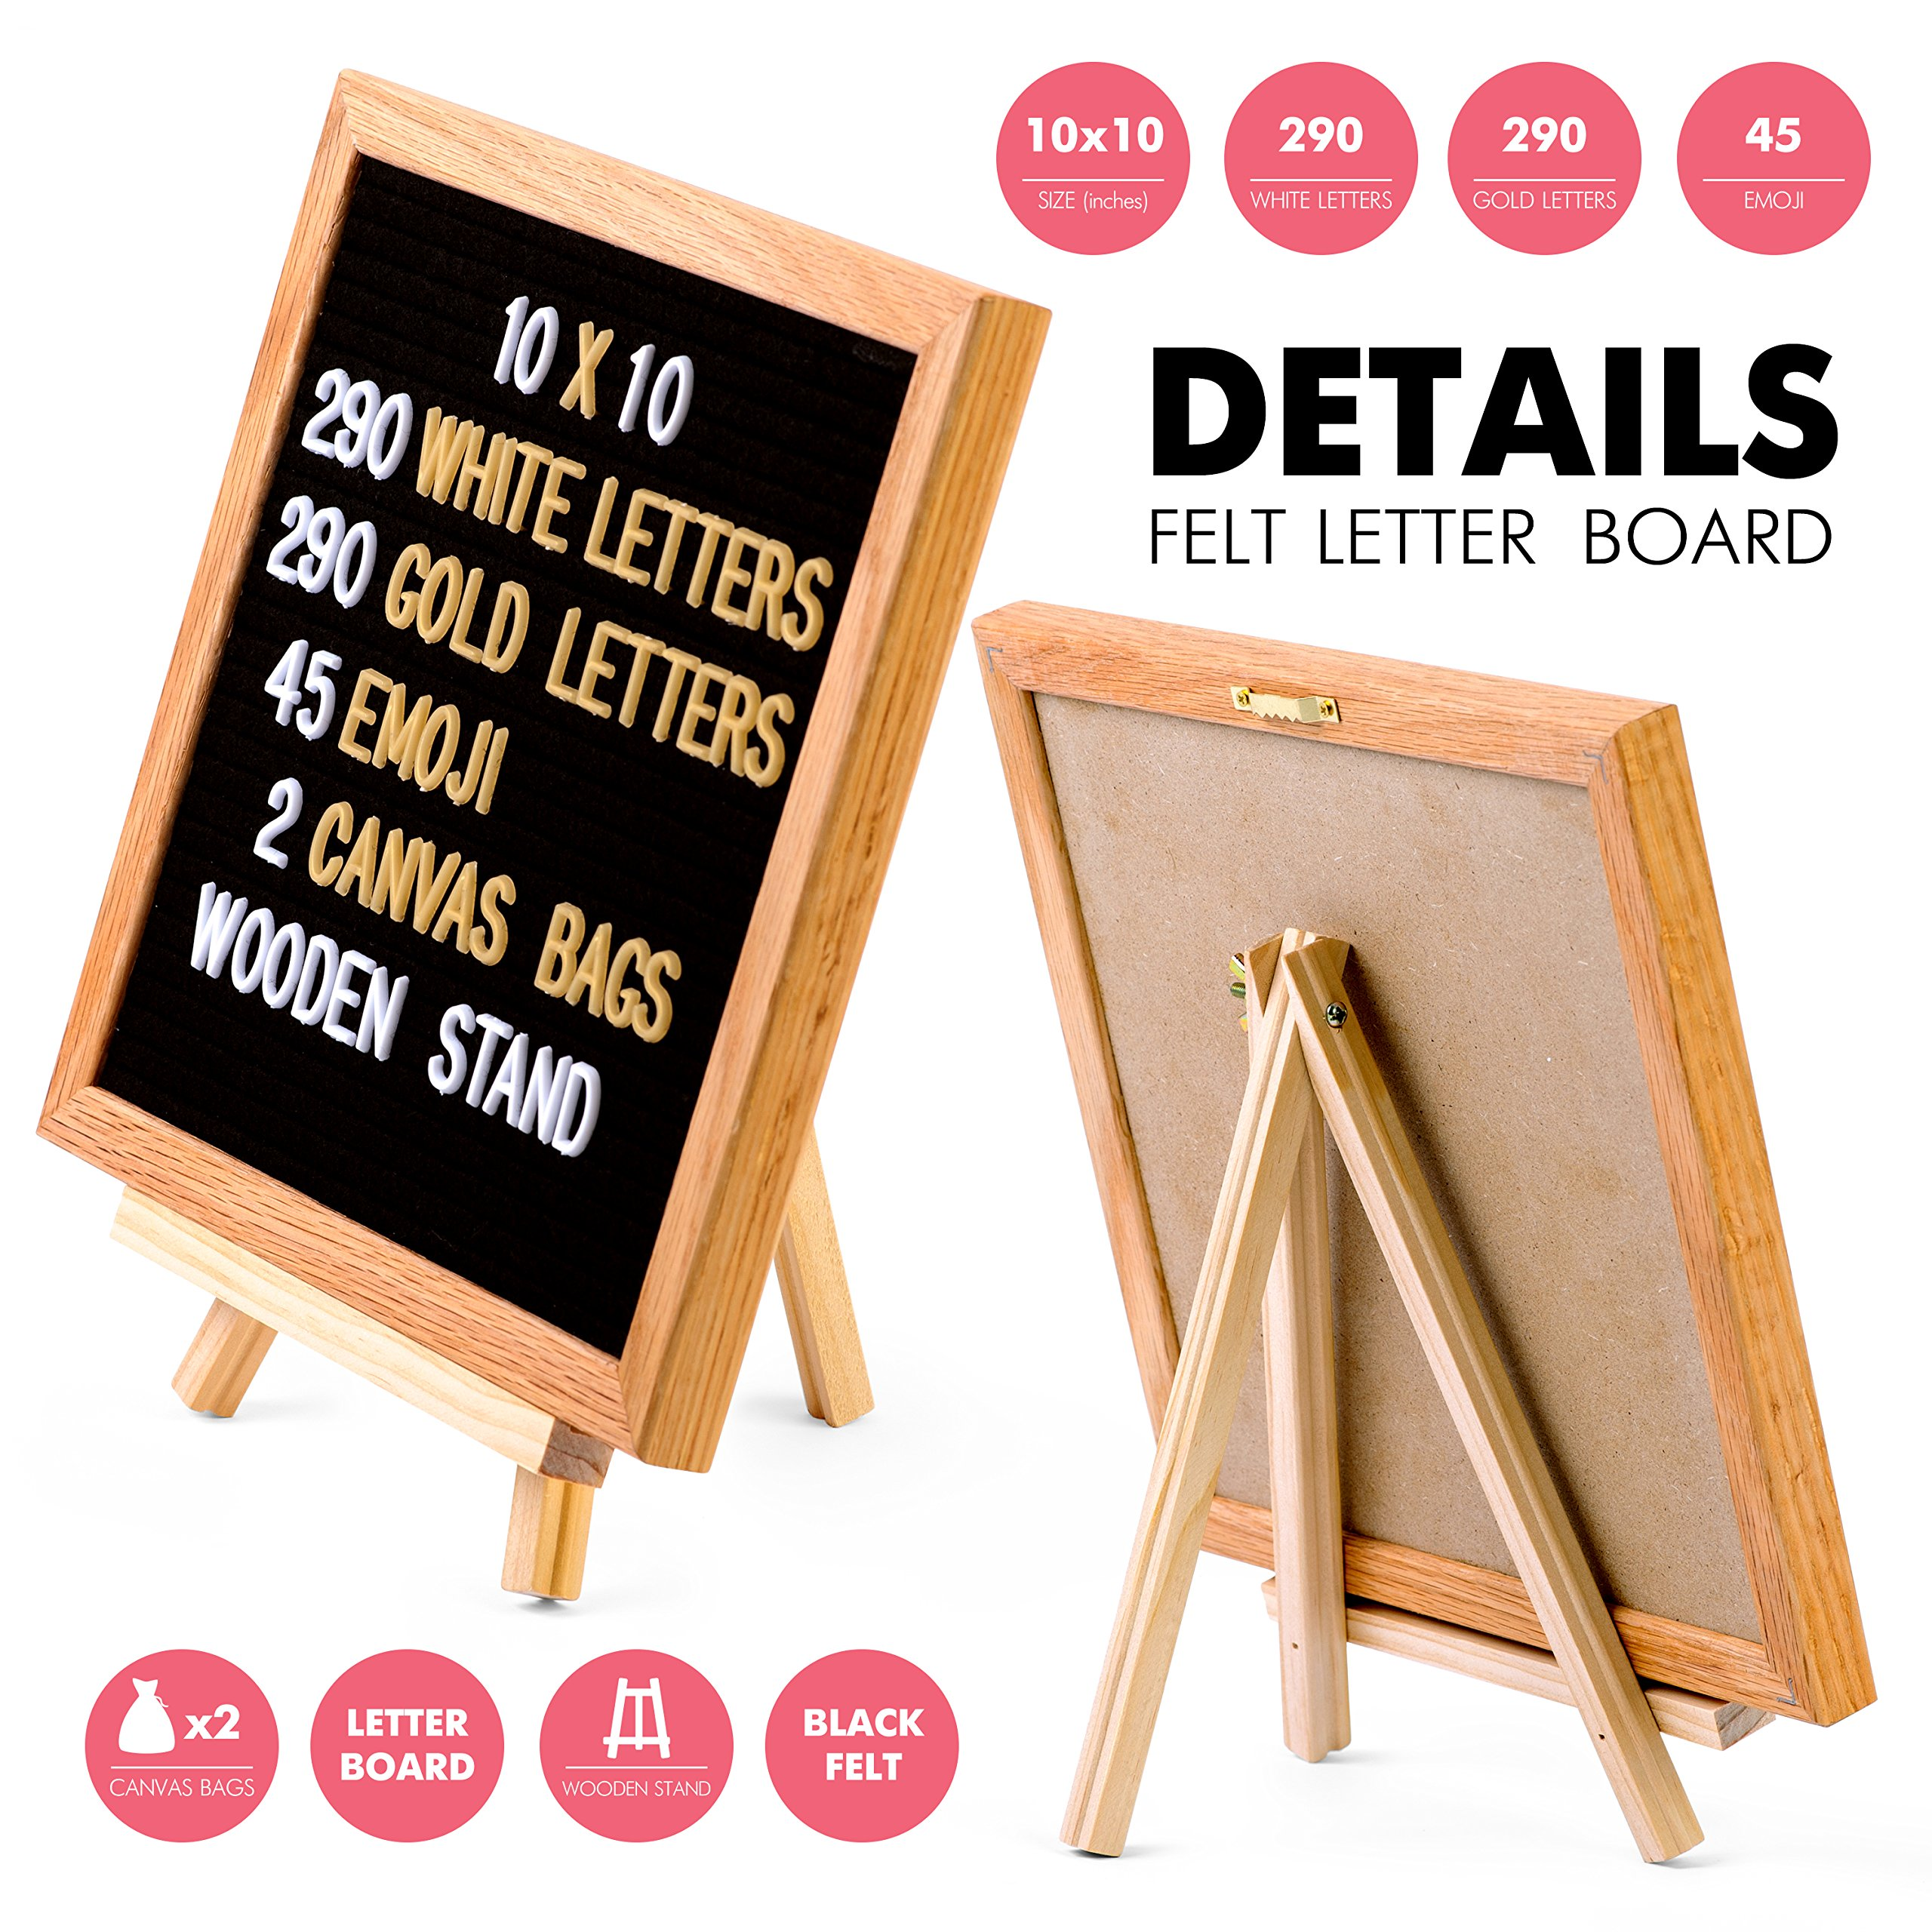 Letter Board - Felt Board for Changeable Messages. Oak Frame, 10x10, Black, 625 White and Gold Plastic Letters, Numbers and Emojis, 2 Storage Bags, Stand and Wall Mount for Home and Office Decoration